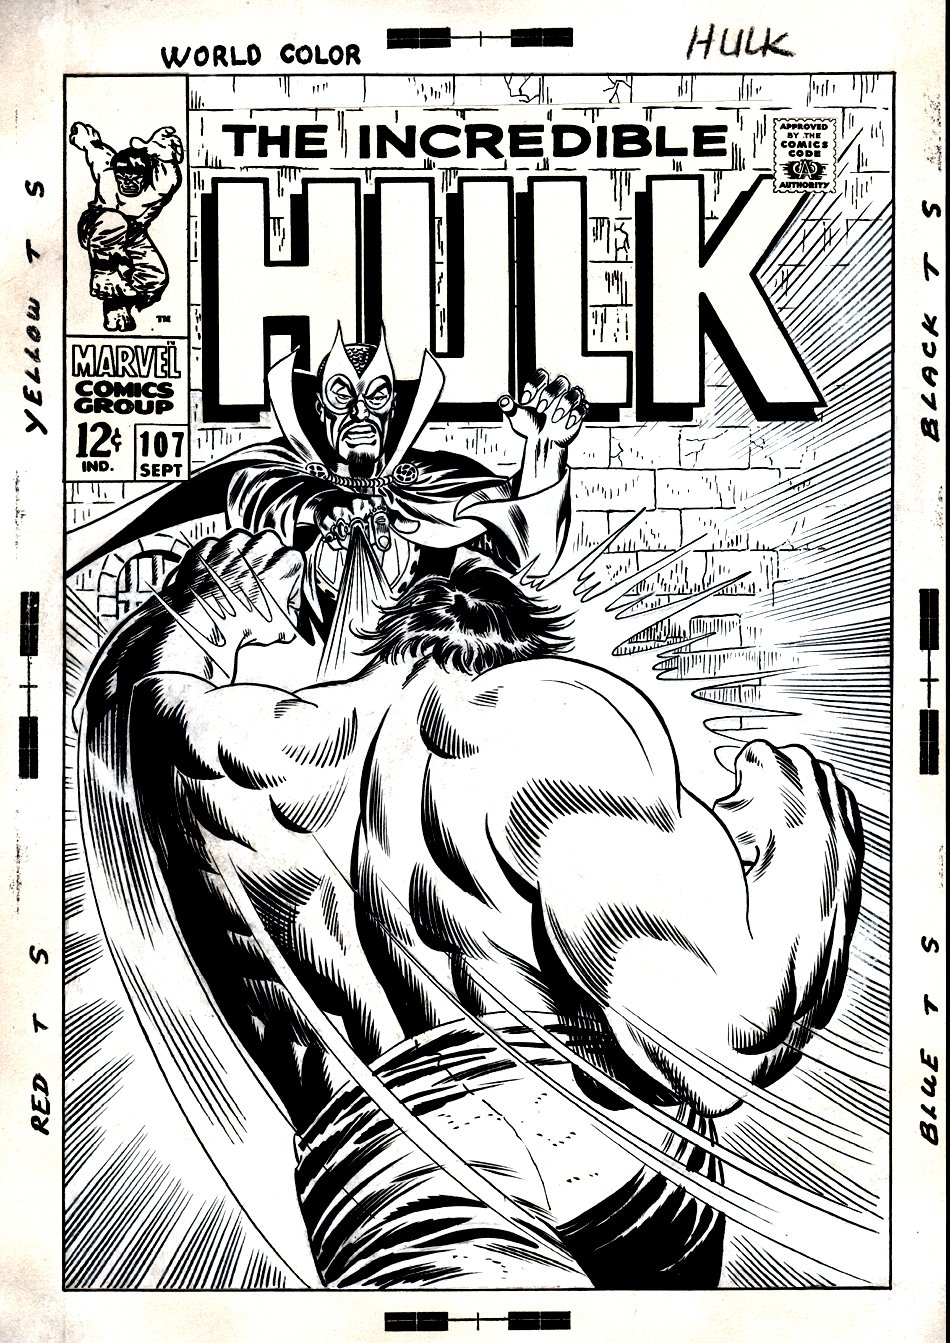 Incredible Hulk #107 Cover (Unused) 1968